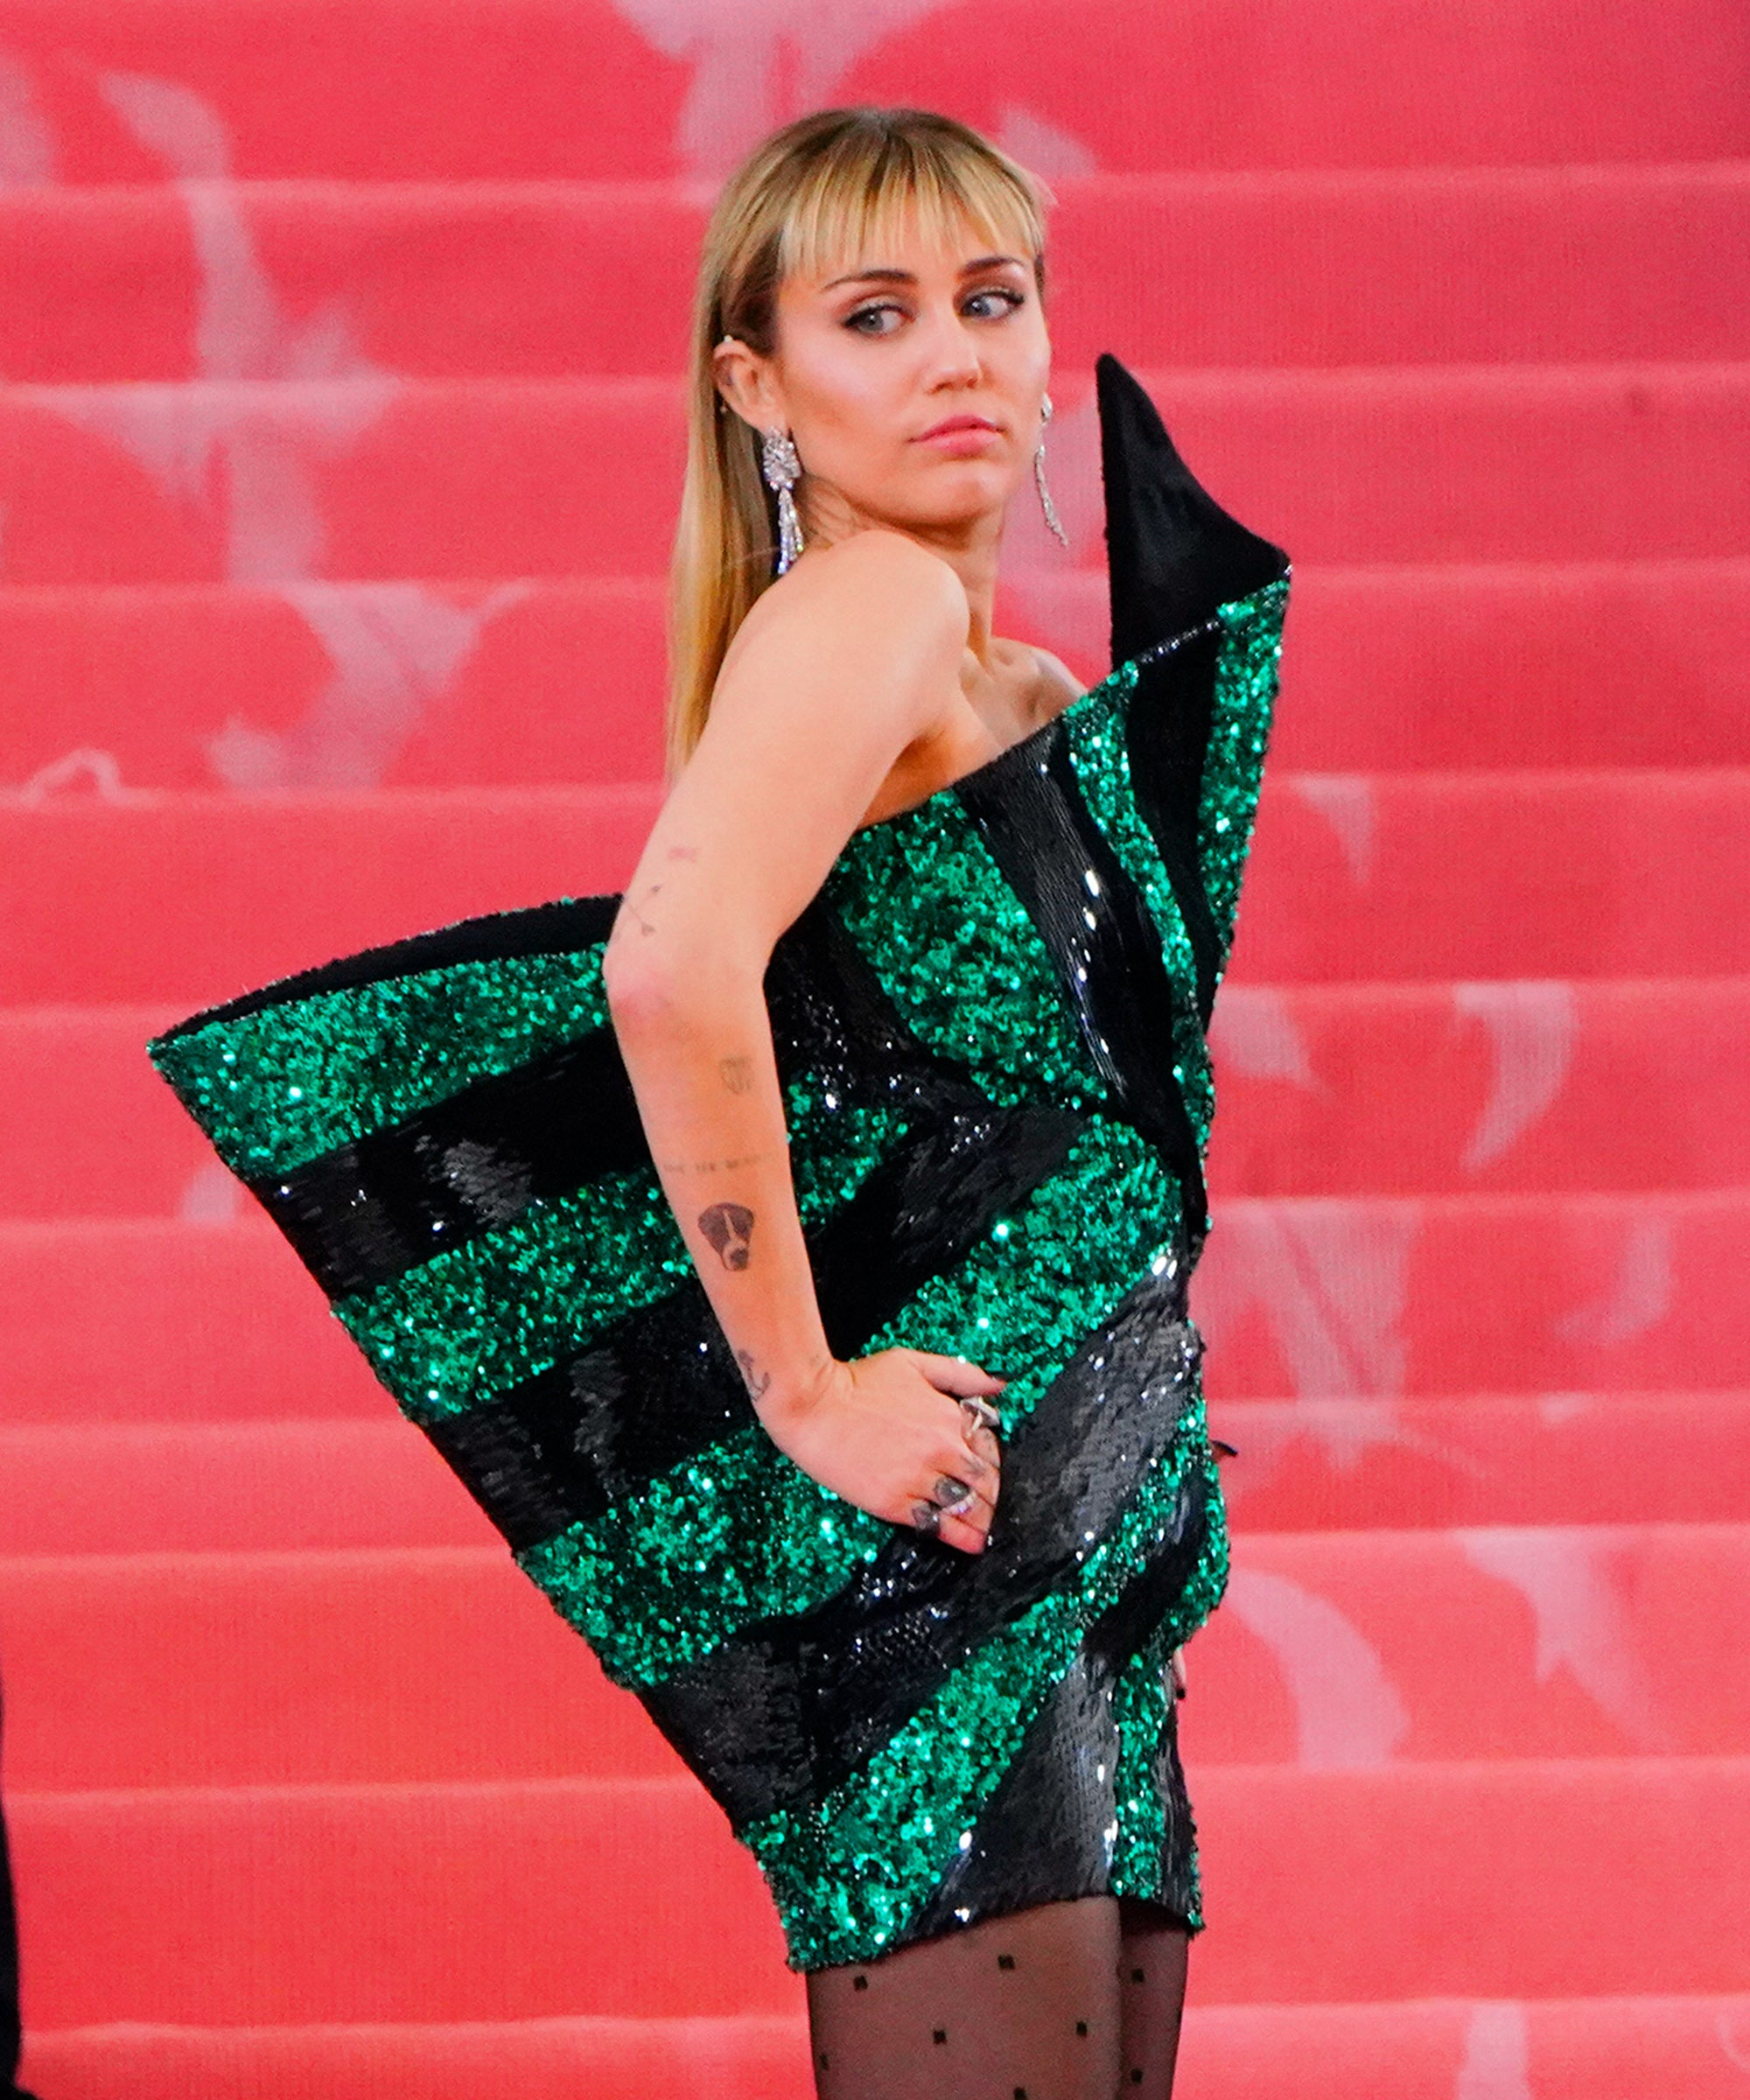 Miley Cyrus Hairstylist Defends New Mullet Haircut